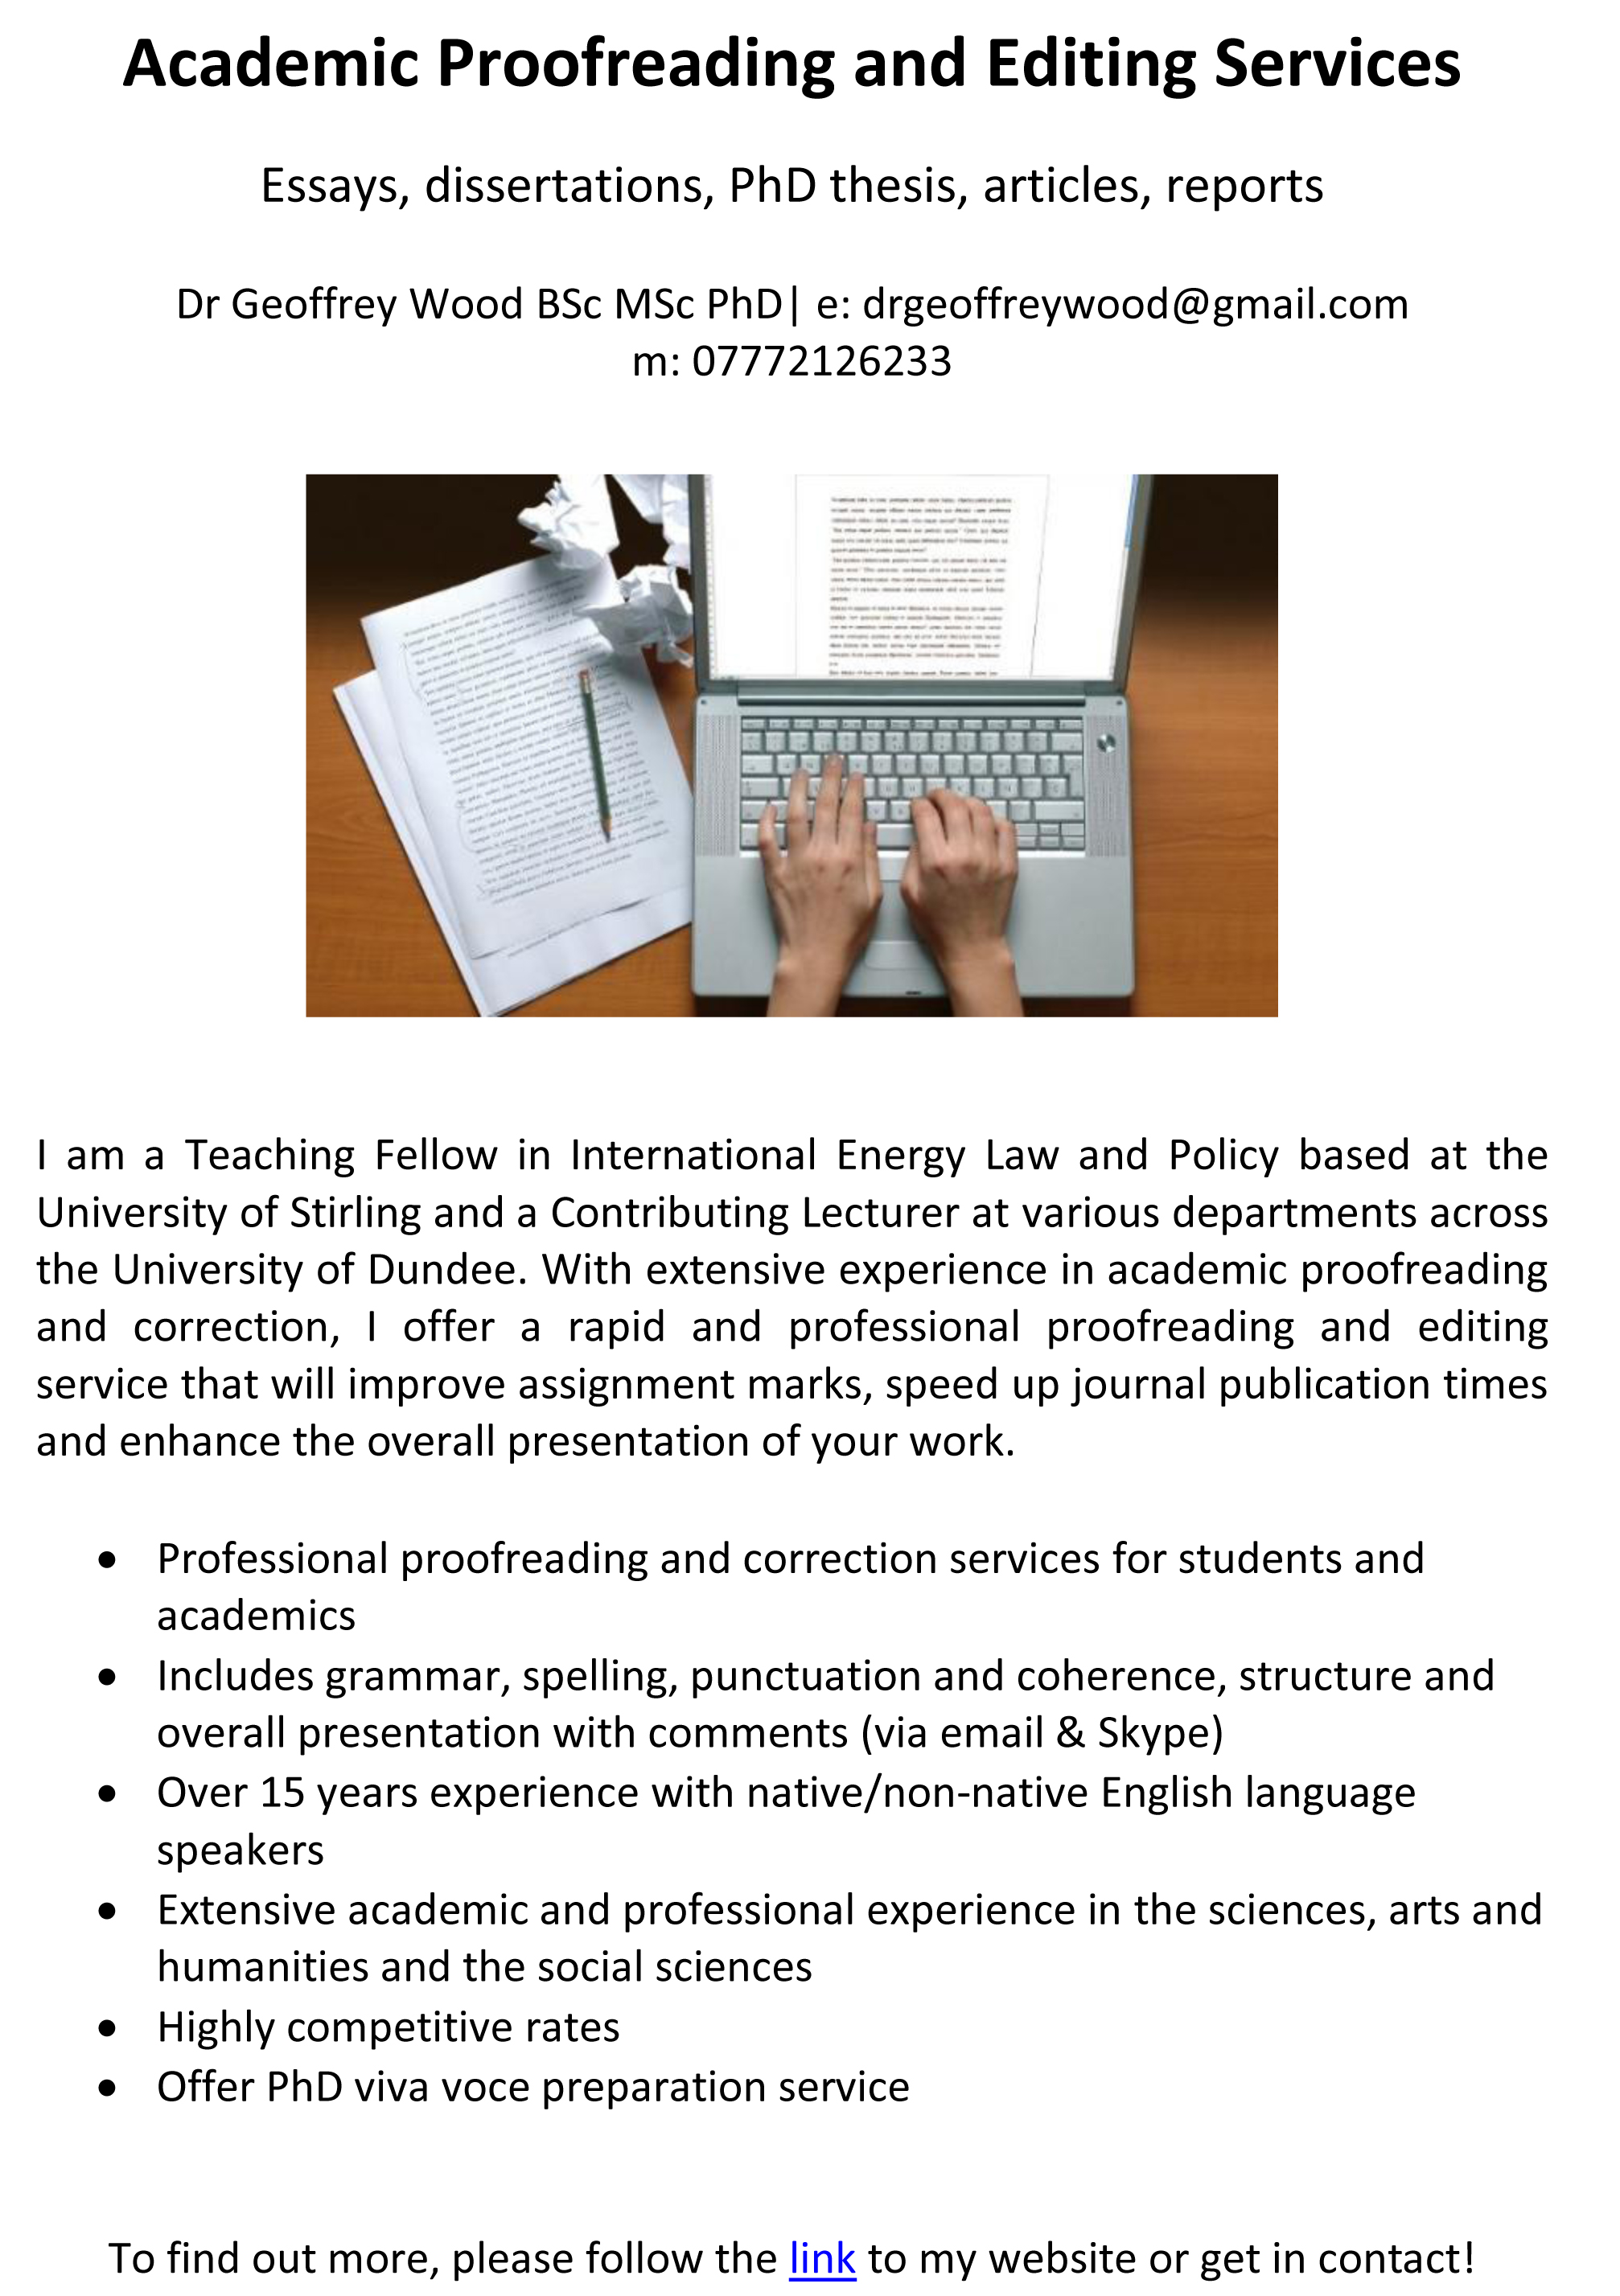 Subject-focused academic proofreading and editing services